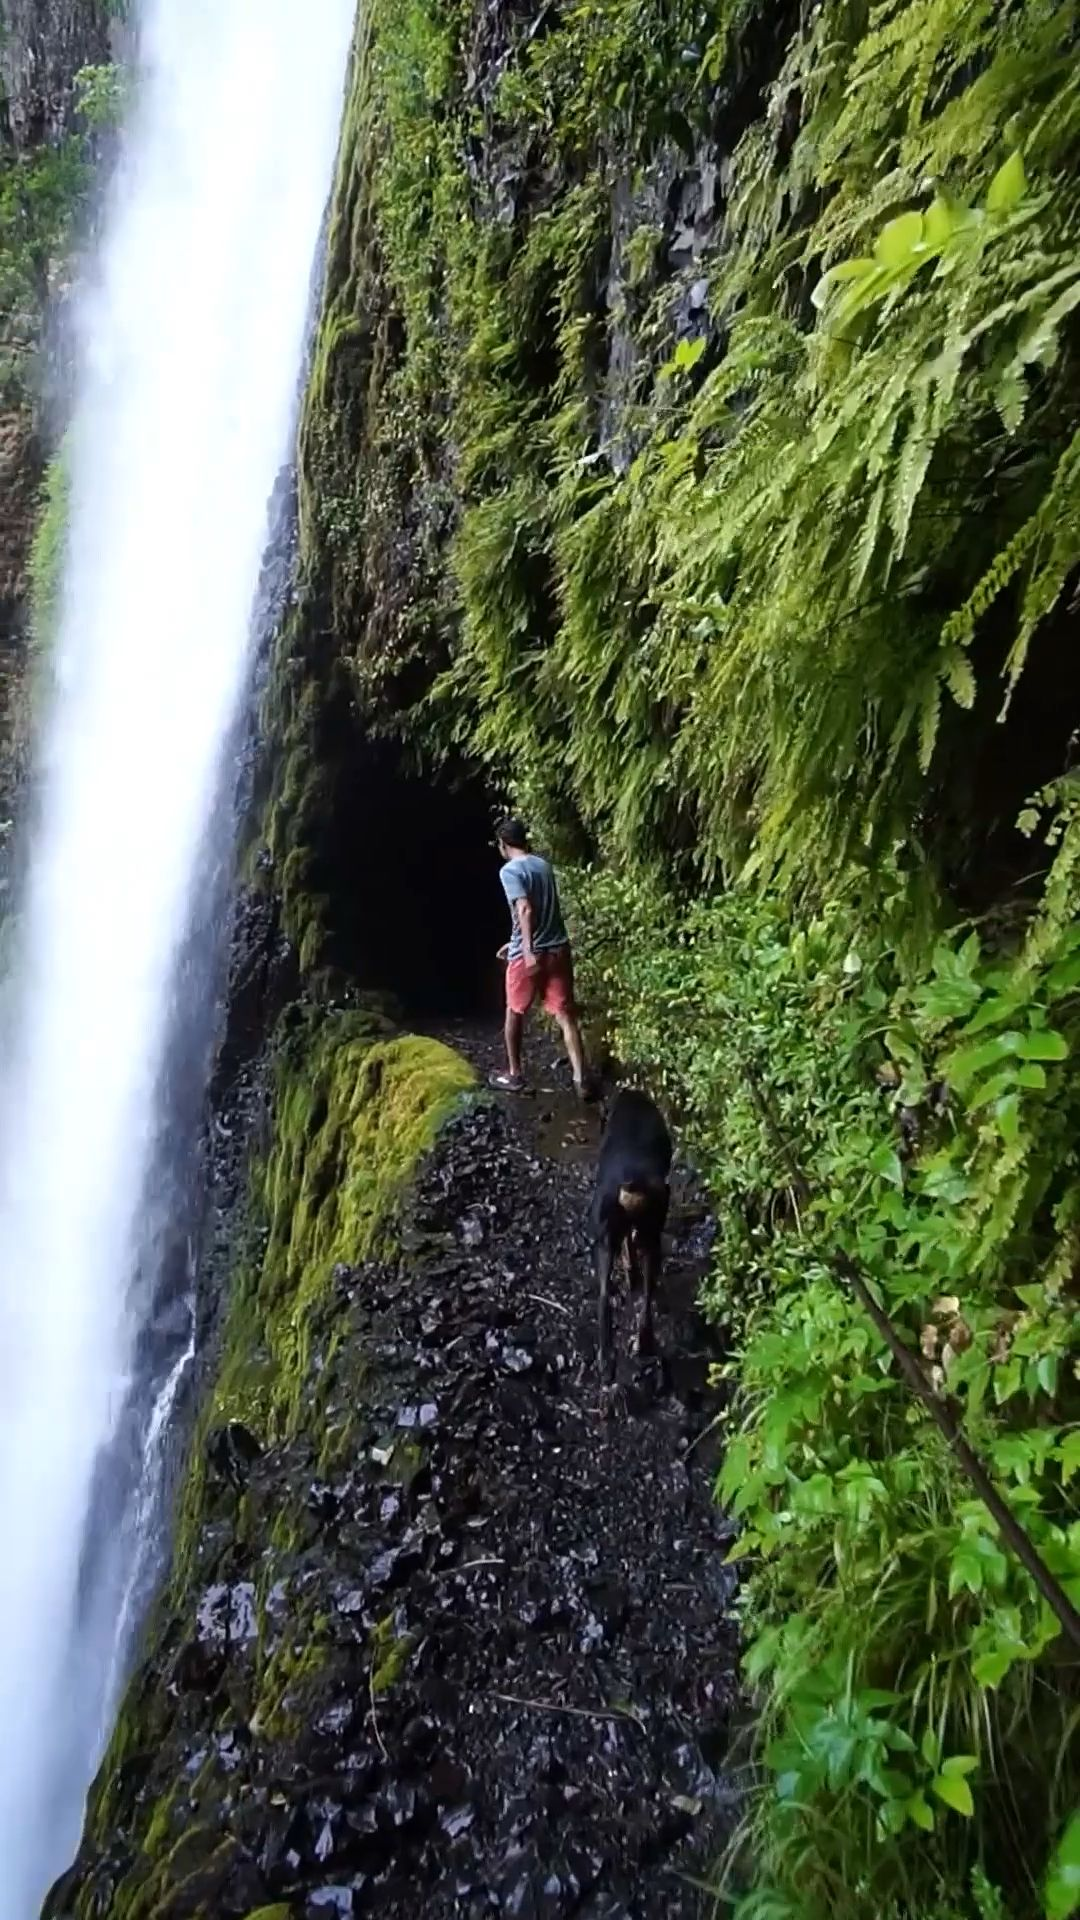 Eagle Creek Trail near Portland, Oregon - one of the best hikes in the Columbia River Gorge